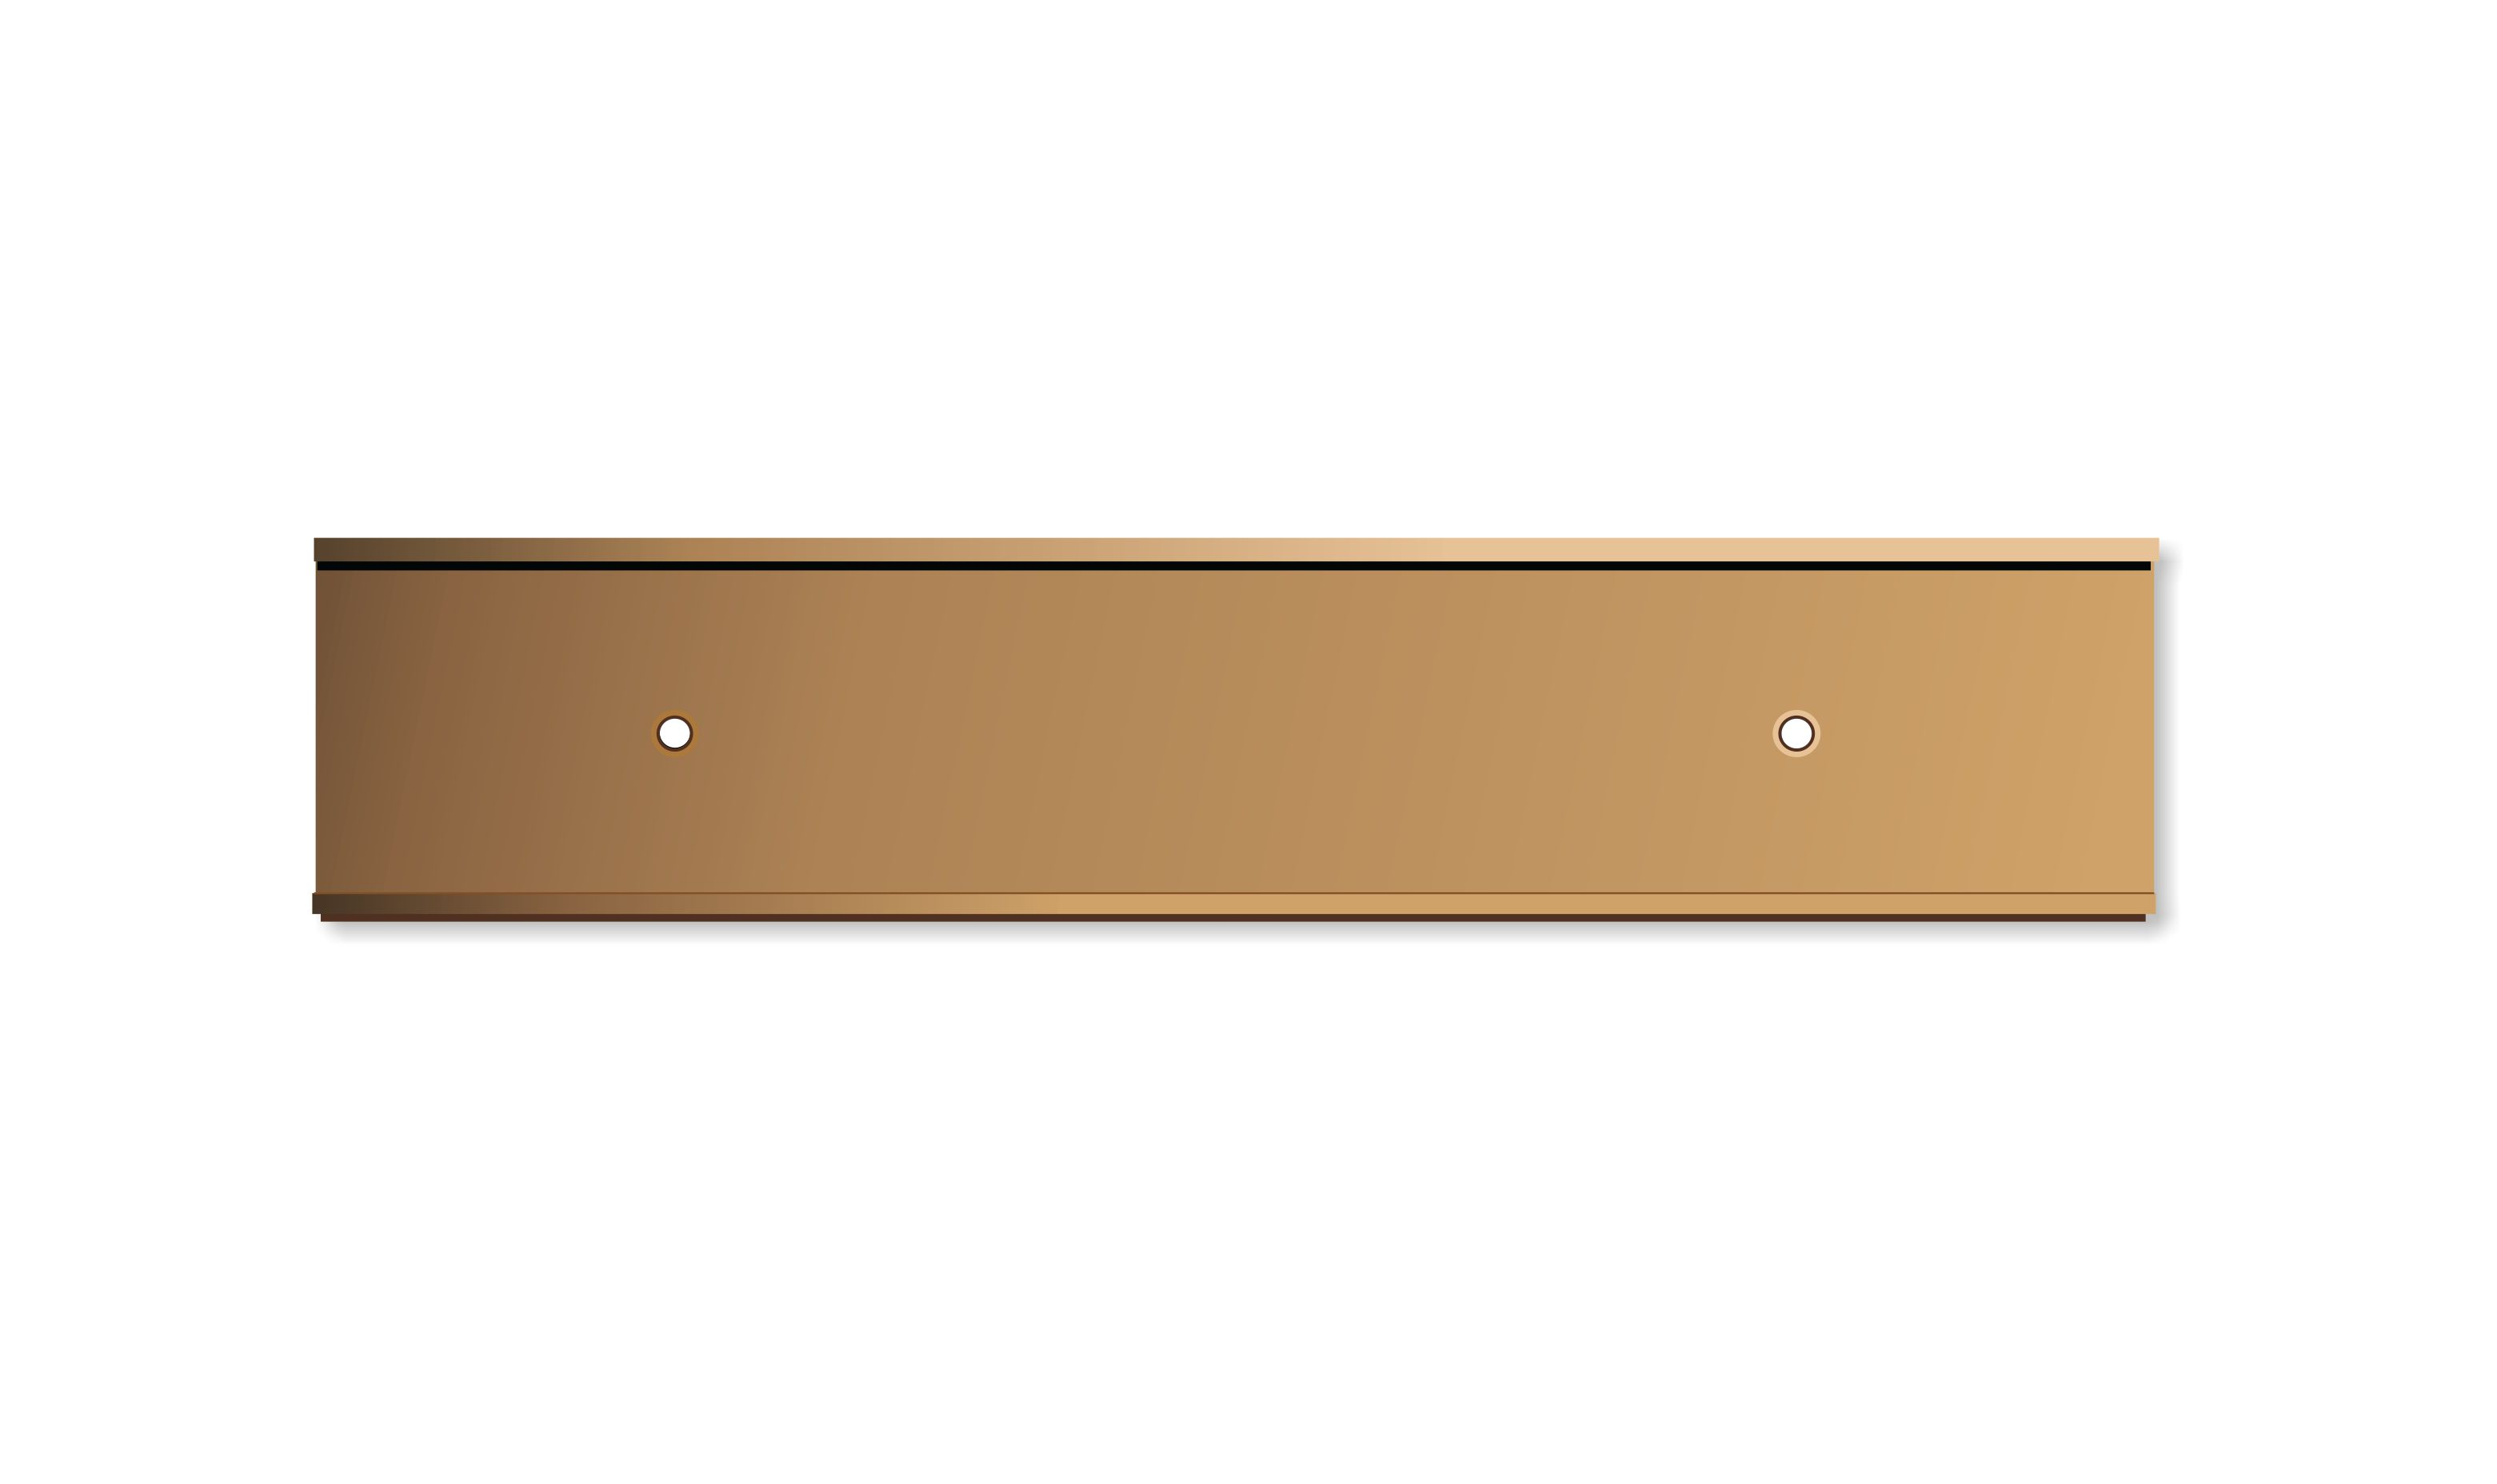 2 X 10 Inch Rose Gold Aluminium Wall Door Plate Holder